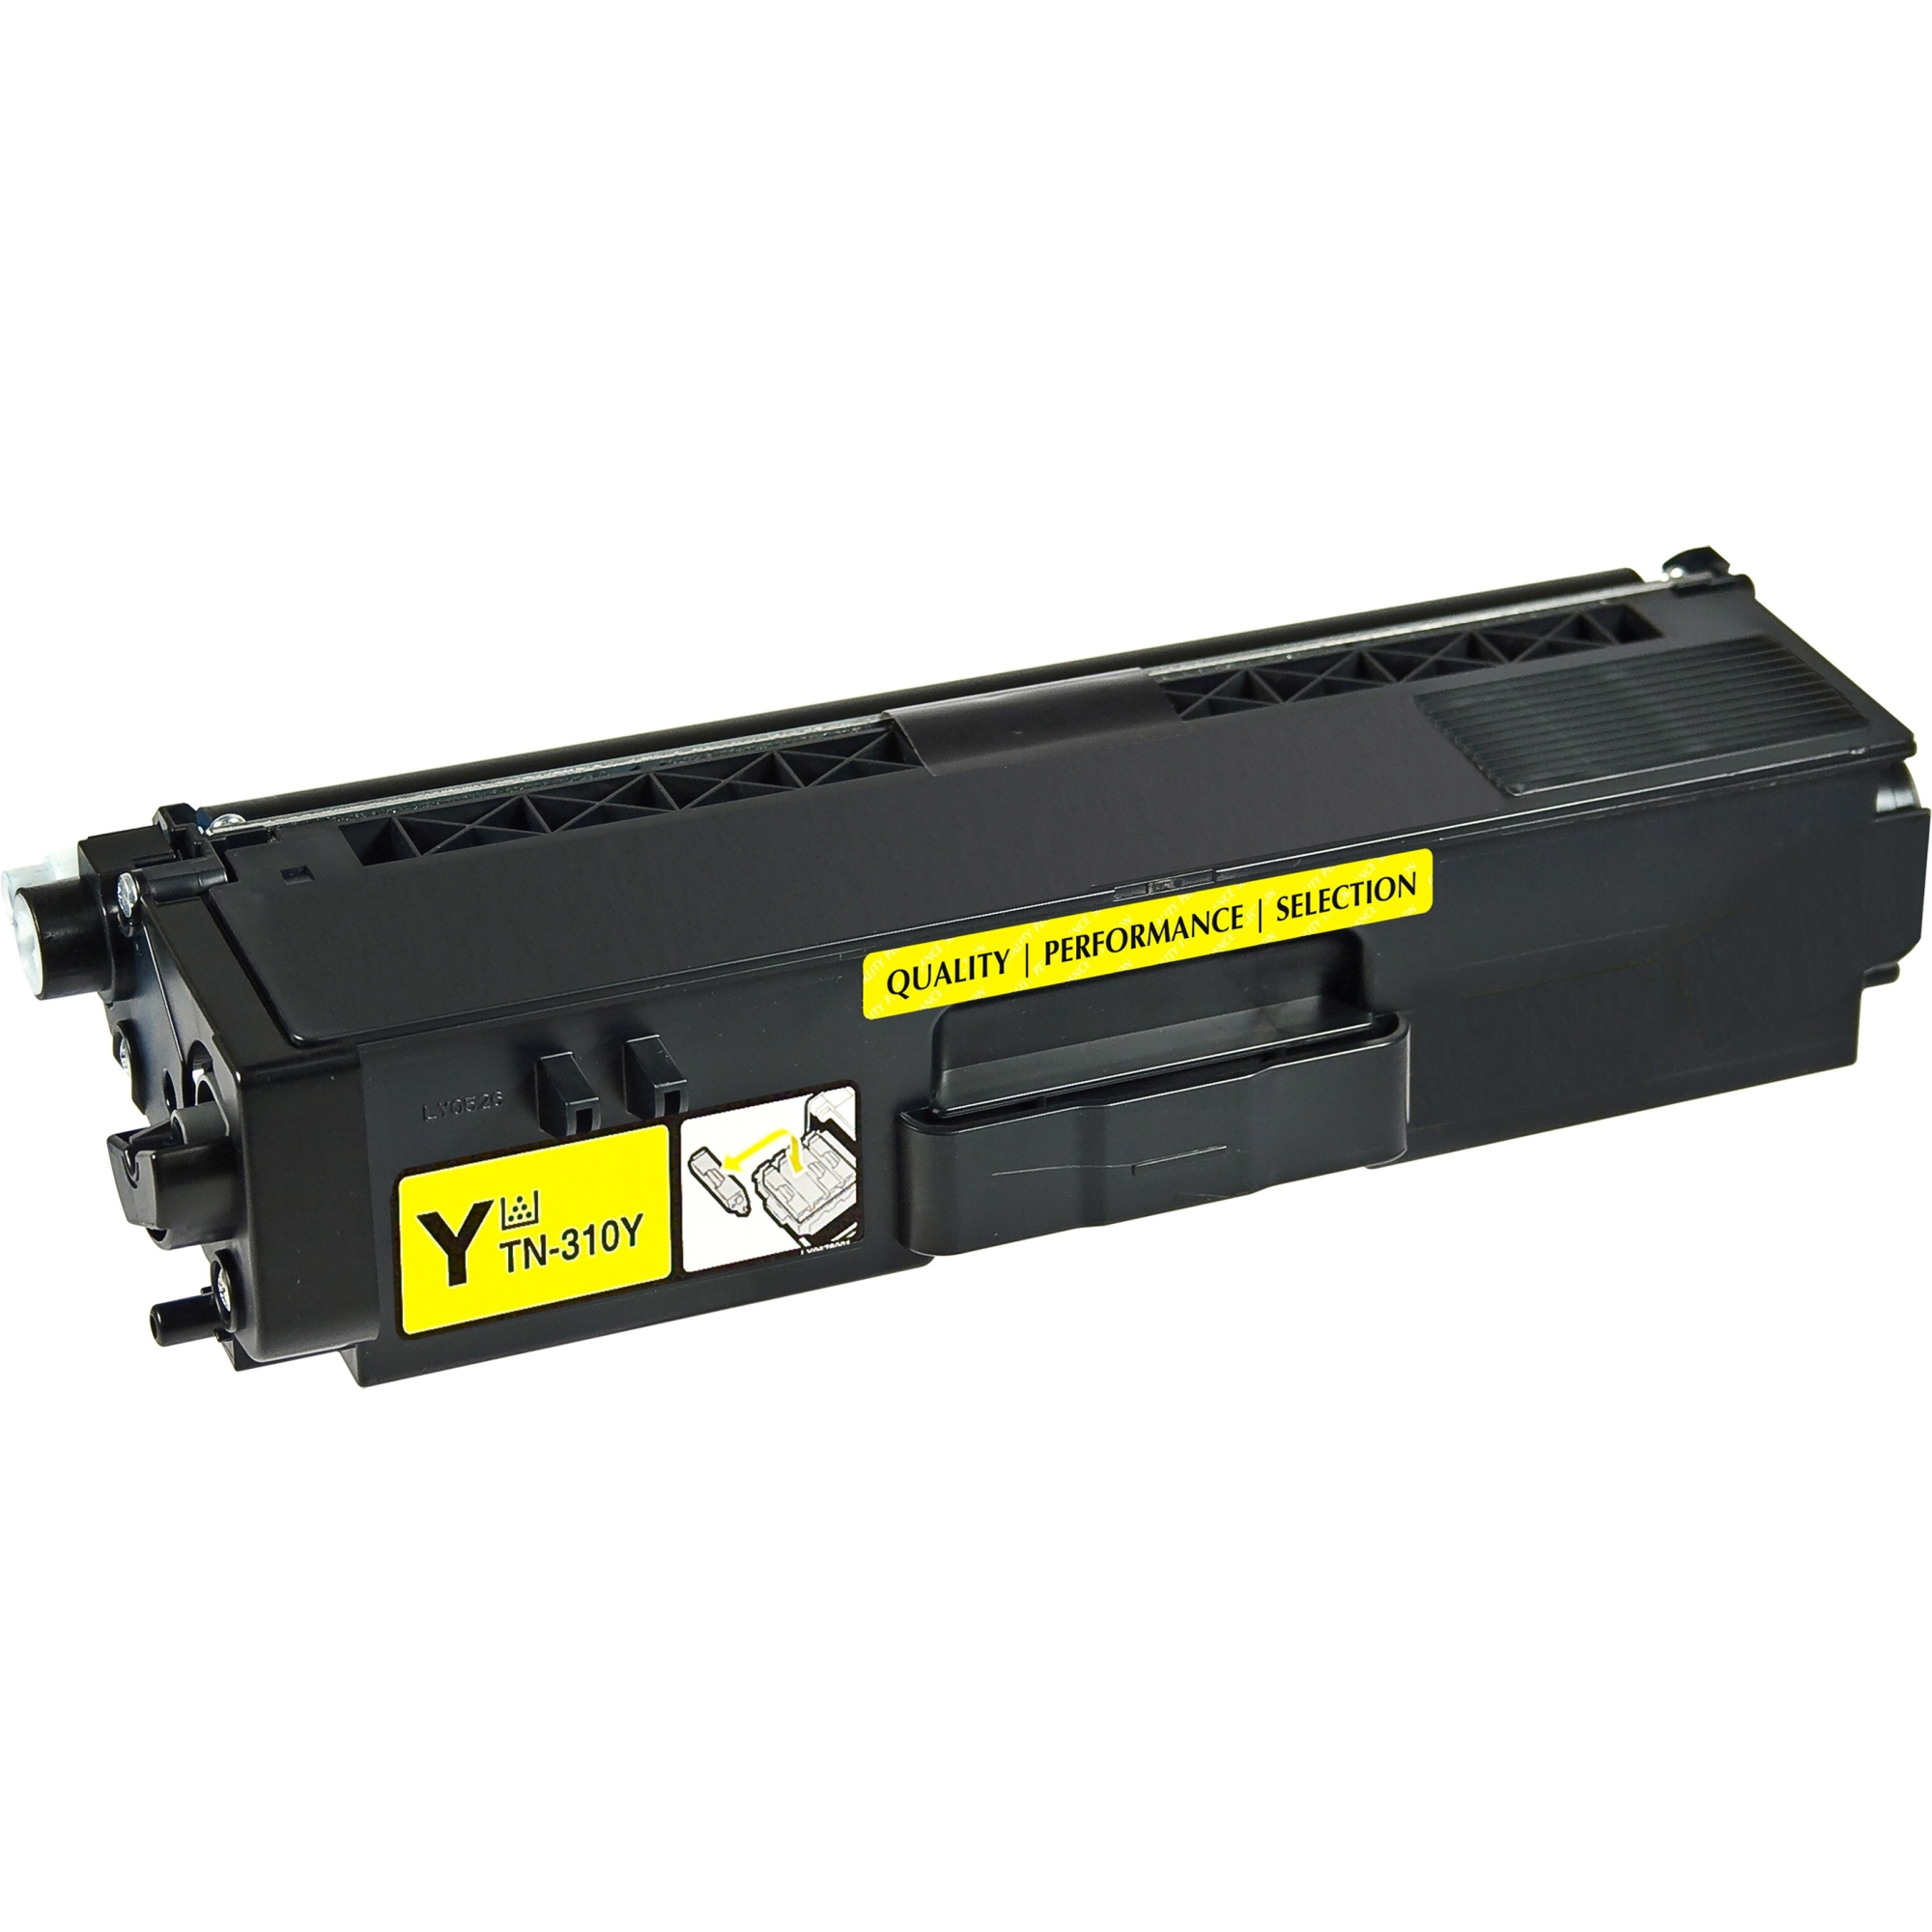 Toner Cartridge - Replacement for Brother (TN315Y) - Yellow - Laser - High Yield - 3500 Page